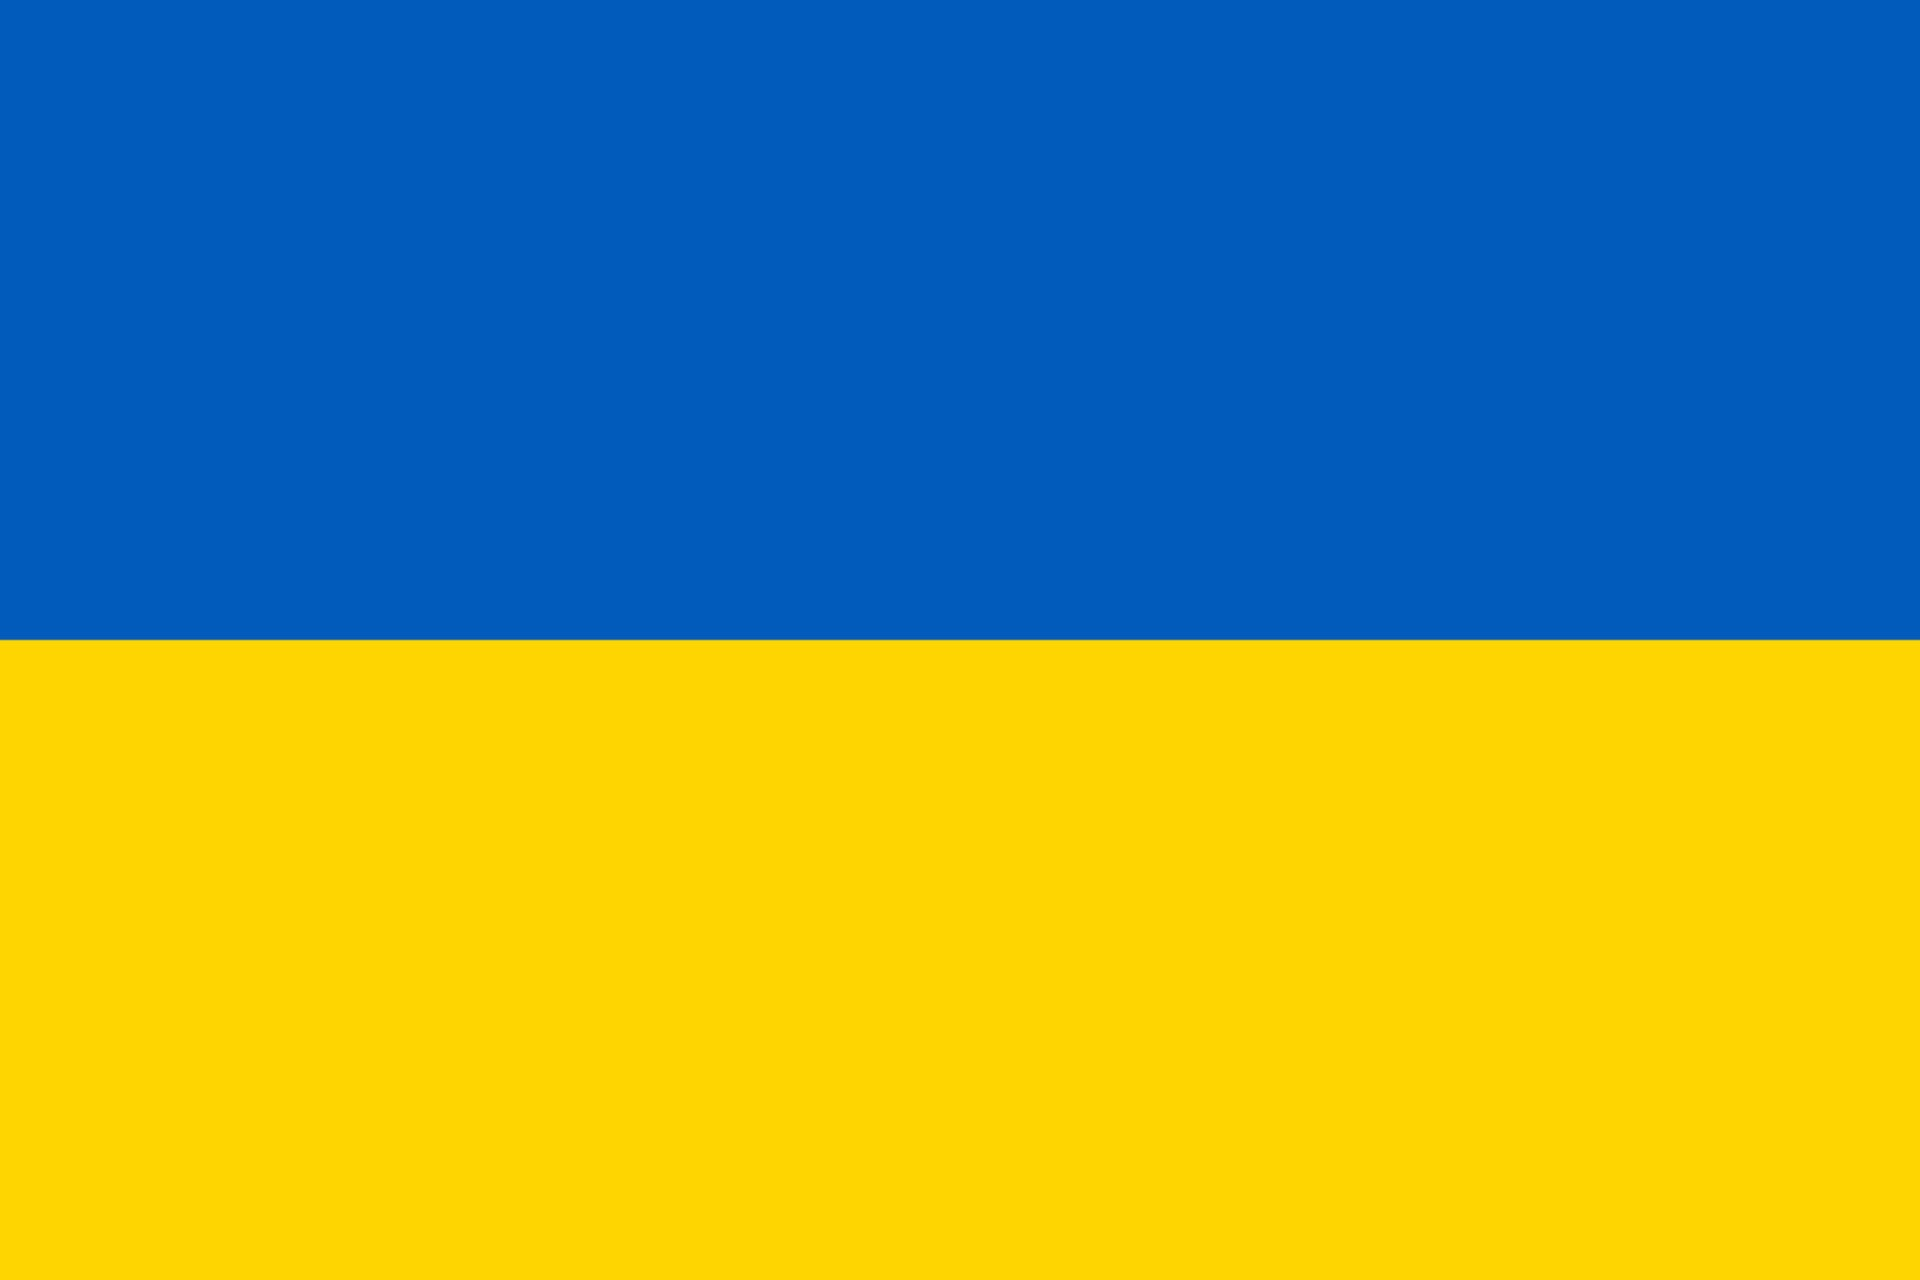 ukraine-flag-large